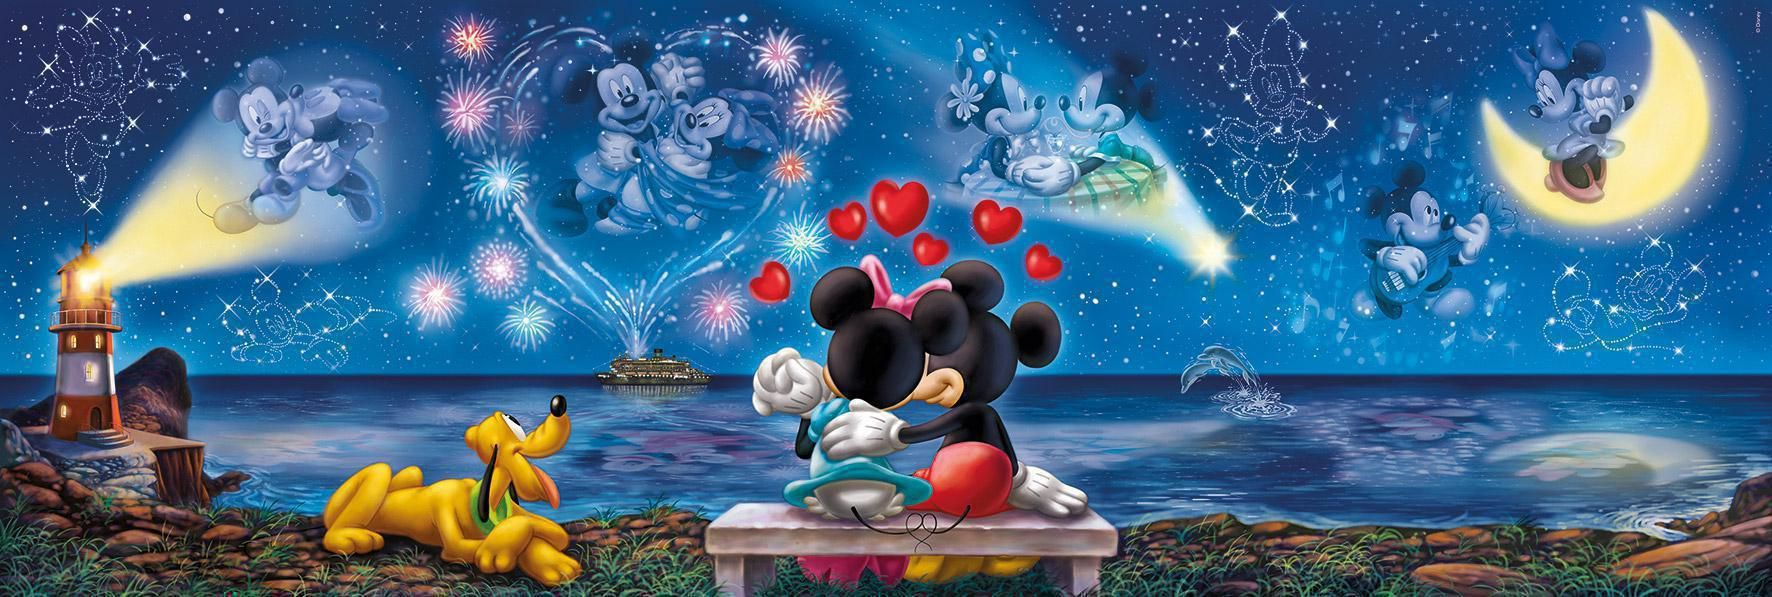 Mickey And Minnie Disney Collage Cross Paintings